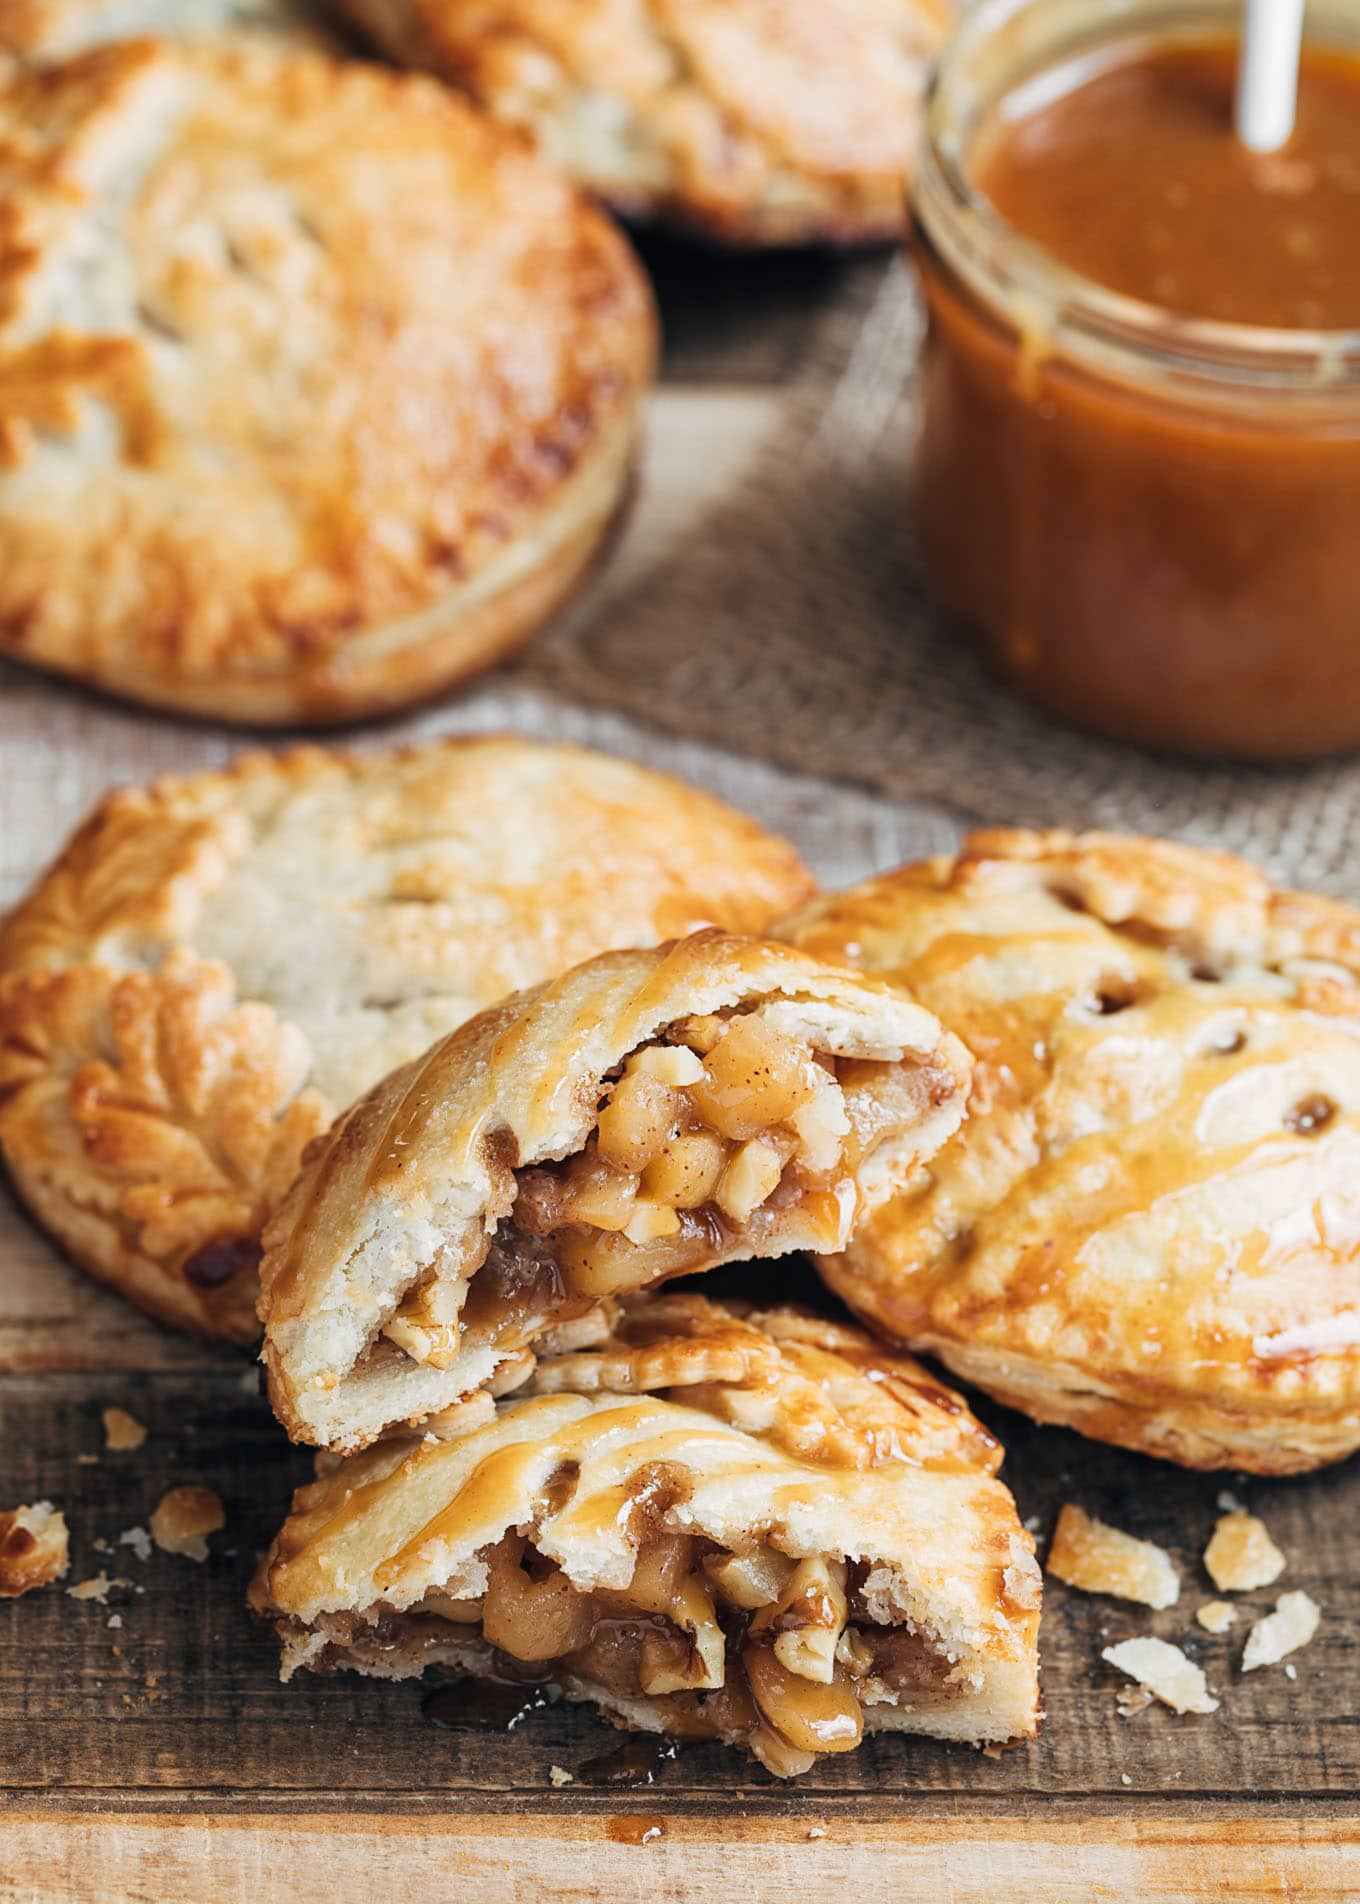 caramel apple hand pies drizzled with caramel sauce